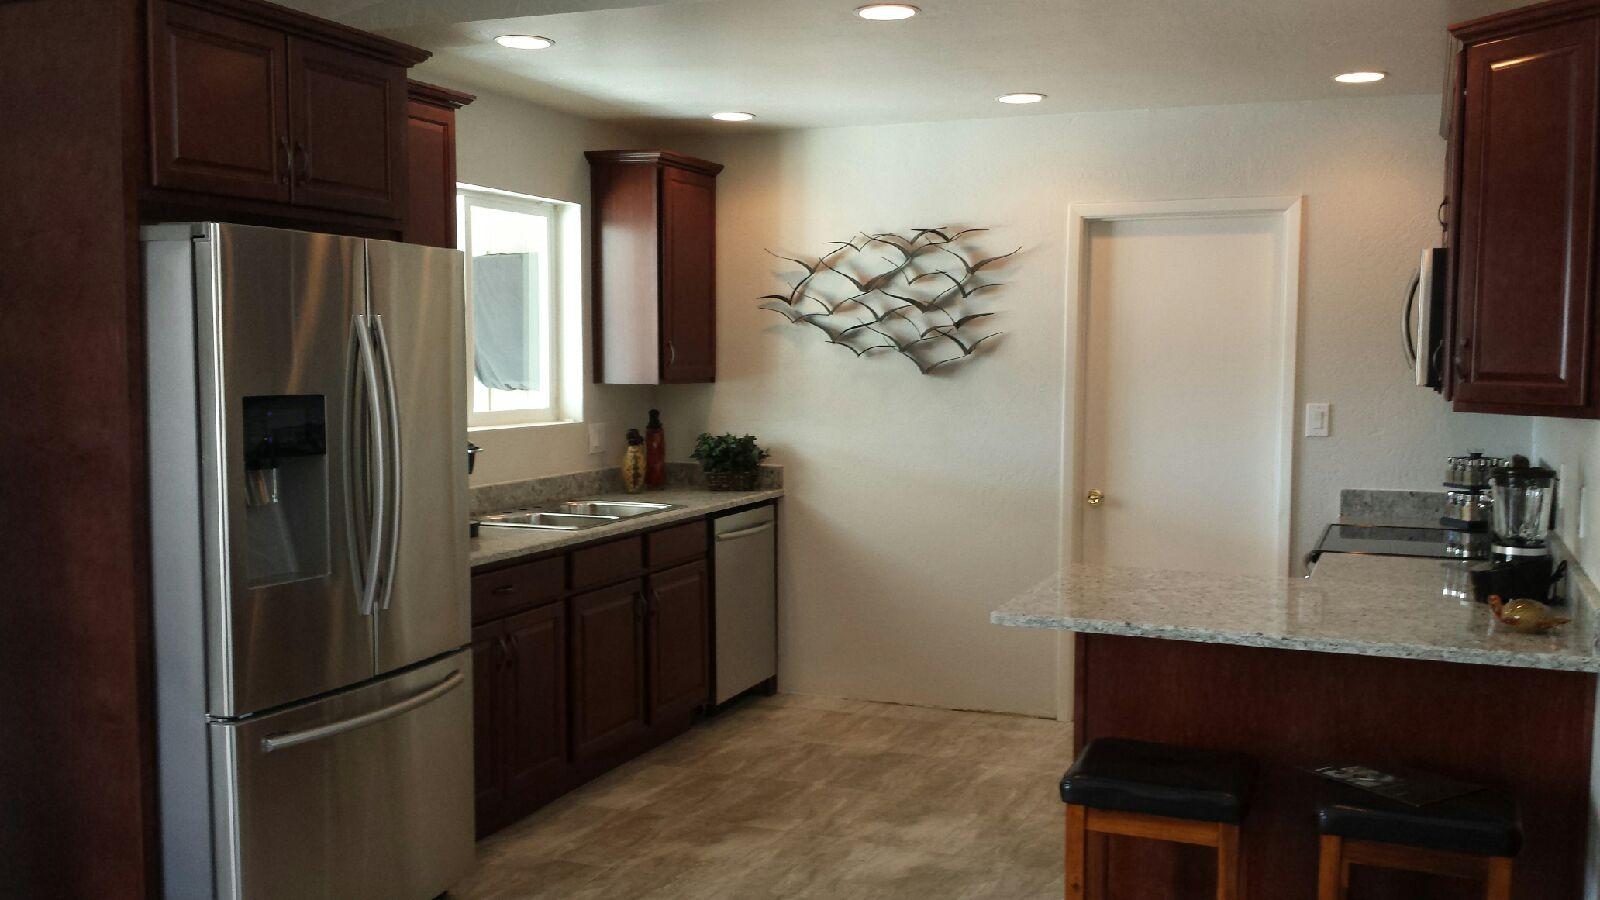 KITCHEN REMODEL (AFTER) PHOTO 1